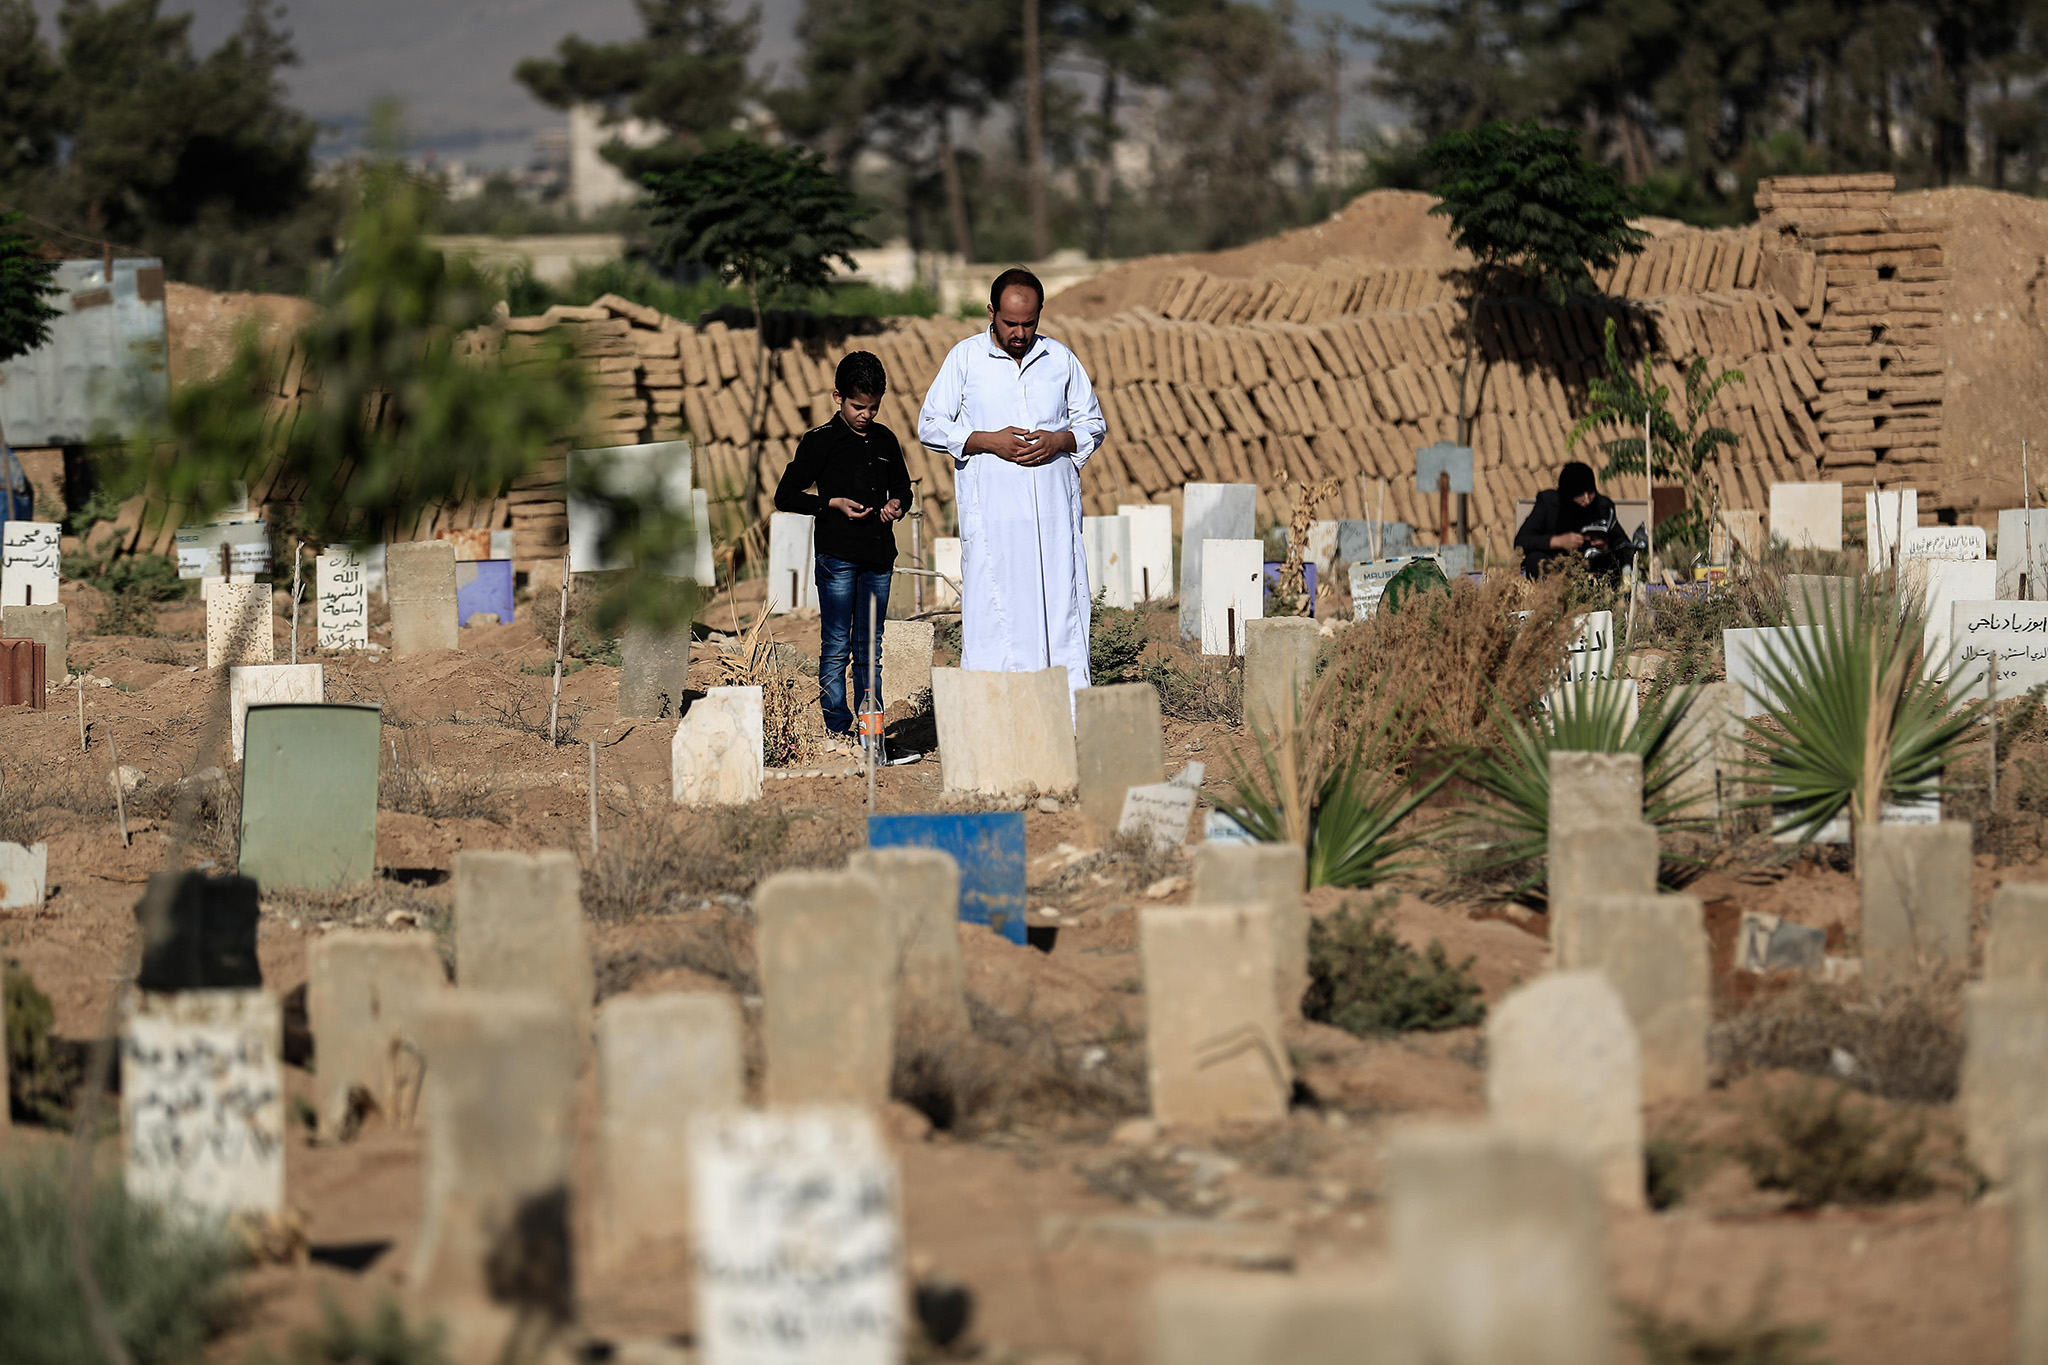 A Syrian man and his son pray over the grave of a relative at a cemetery in the rebel-held town of Douma, east of the capital Damascus, on September 12, 2016, on the first day of the Muslim holiday of Eid al-Adha. / AFP PHOTO / Sameer Al-DoumySAMEER AL-DOUMY/AFP/Getty Images